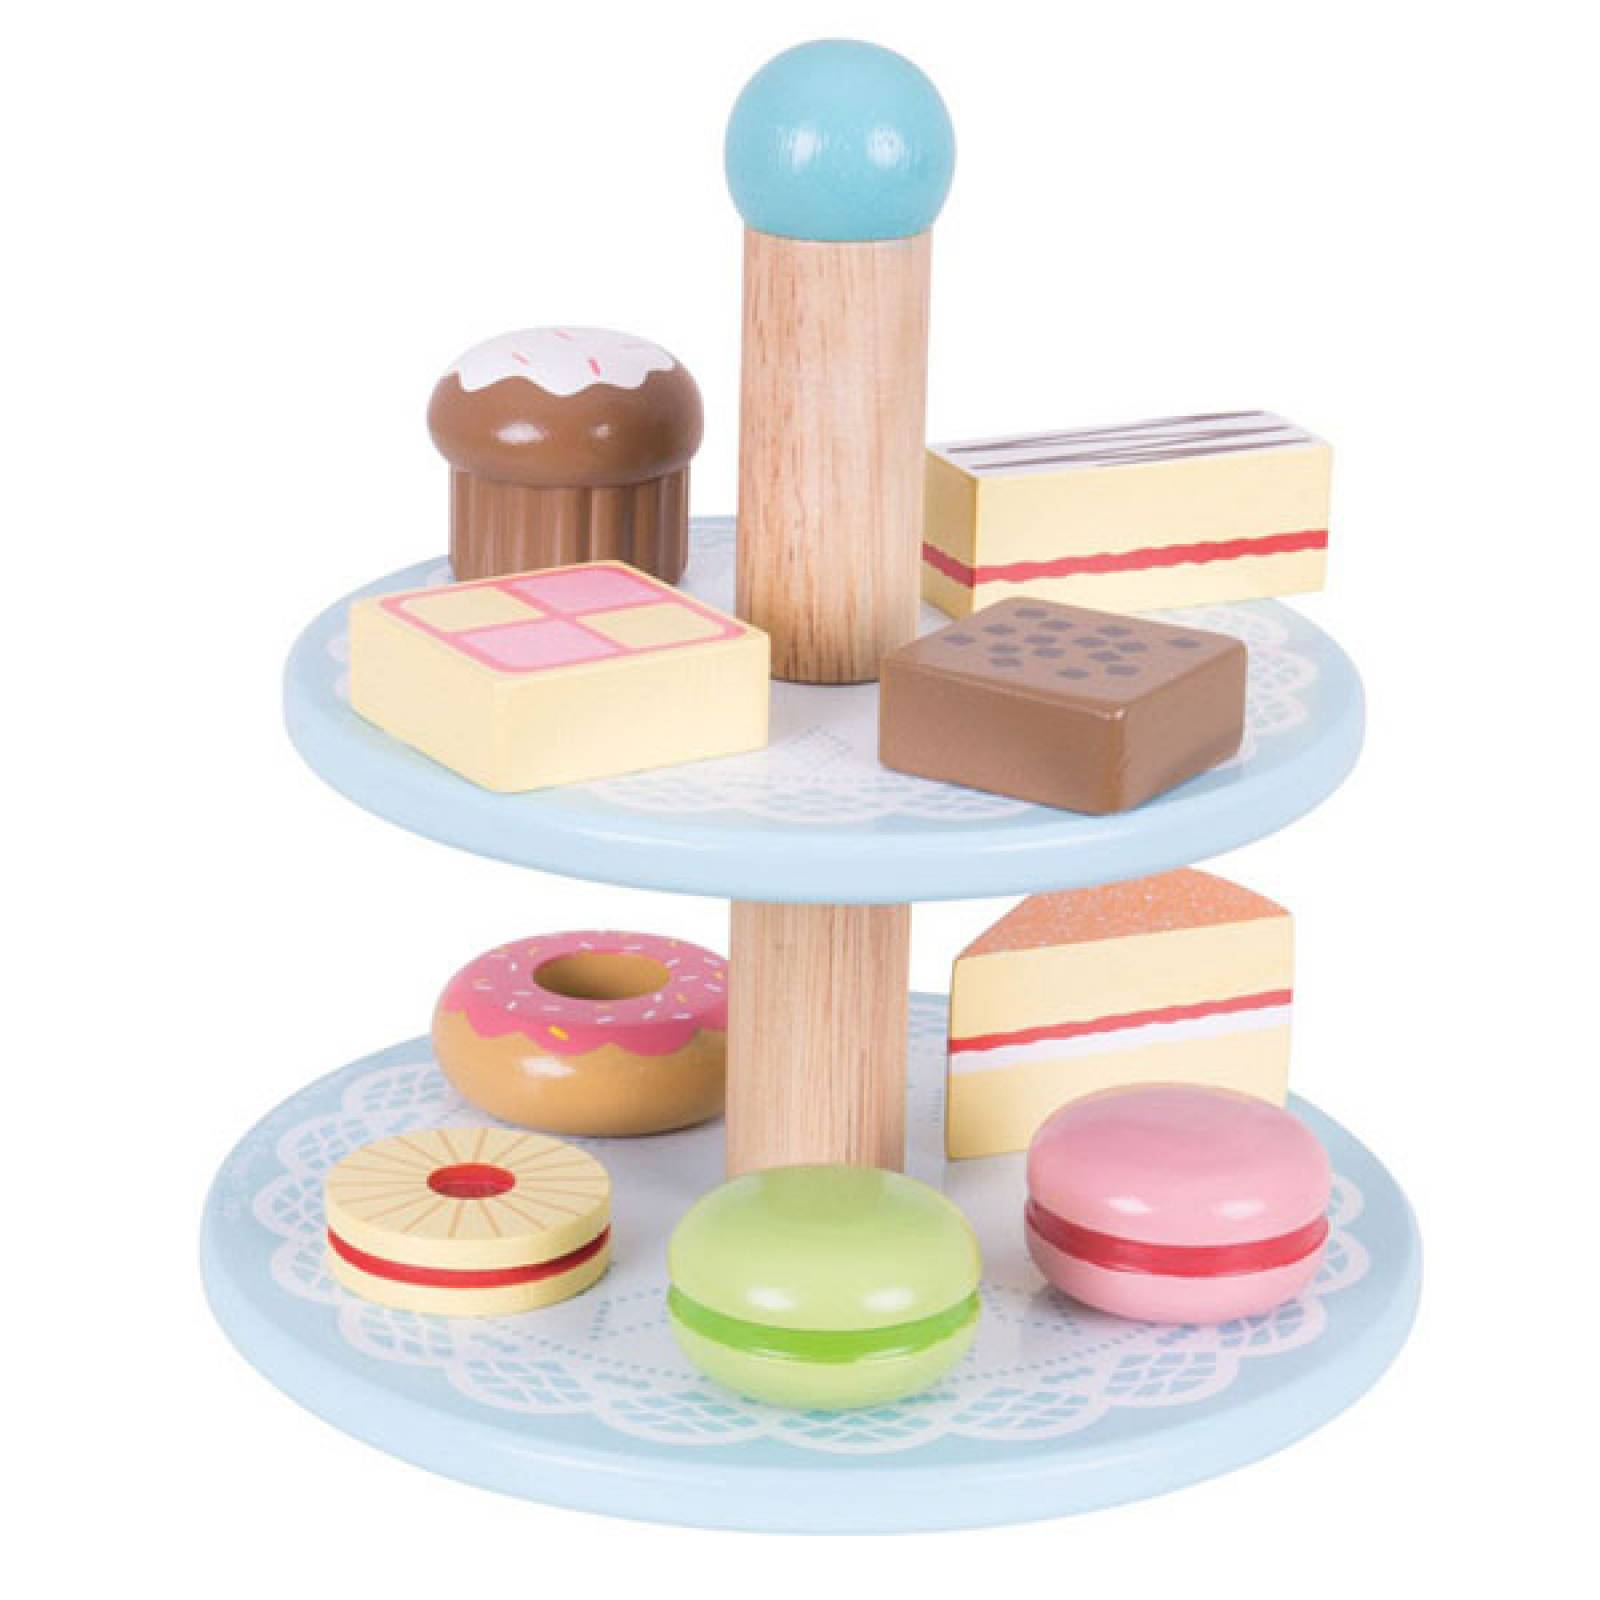 Cake Stand - Set of 10 Wooden Cakes Toy Food 3yr+